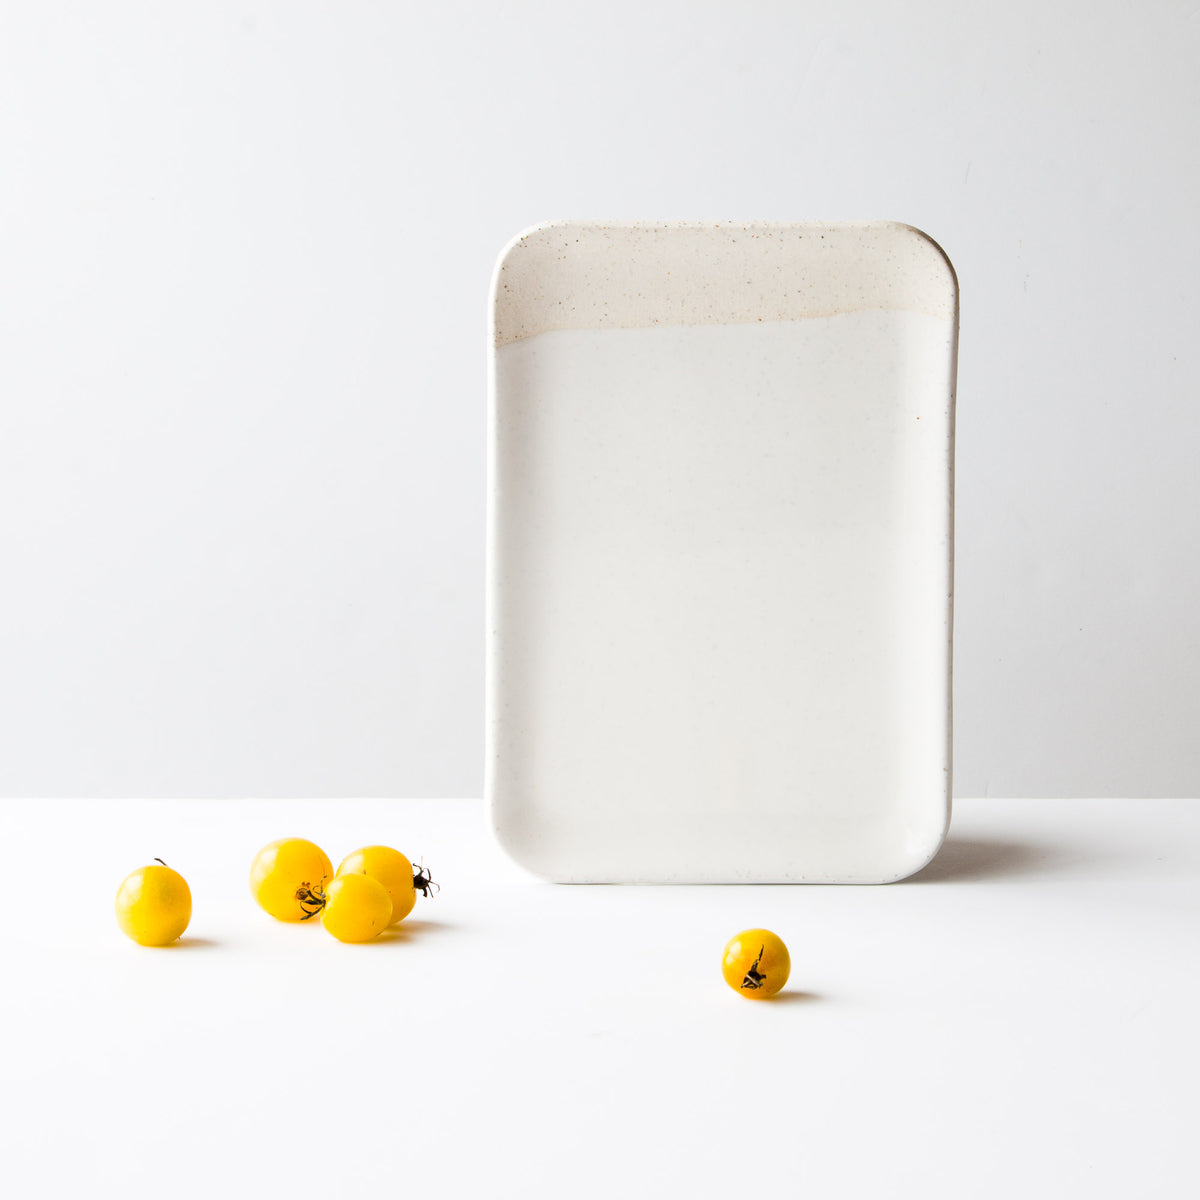 Handmade Ceramic Small Square Serving Board - Sold by Chic & Basta